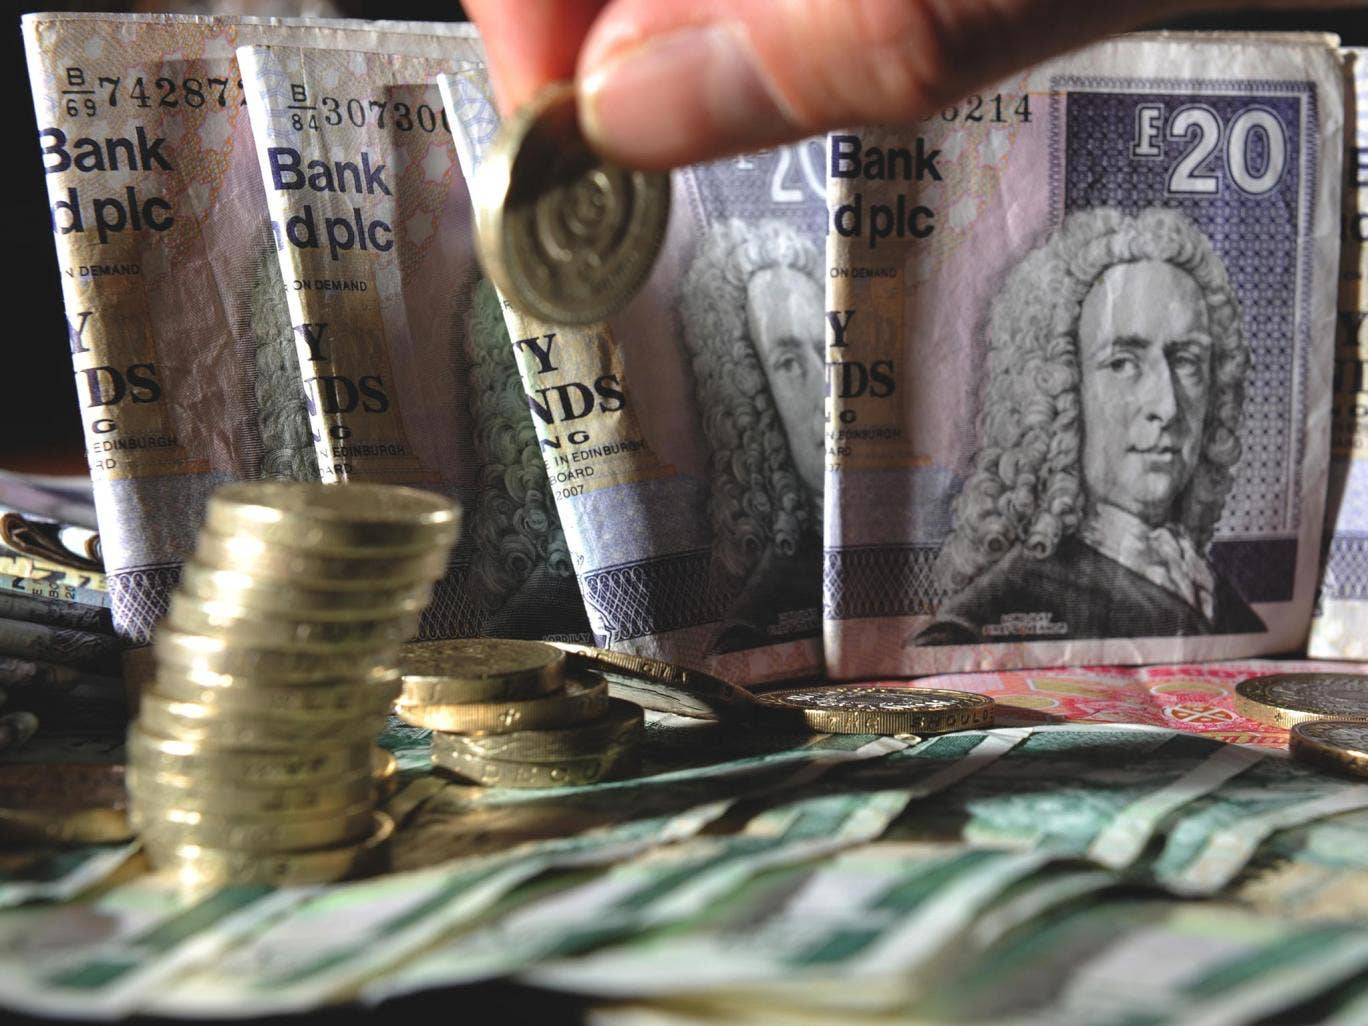 Undecided voters are joining the unionist camp following a warning that Scotland will not be able to keep the pound if it becomes independent